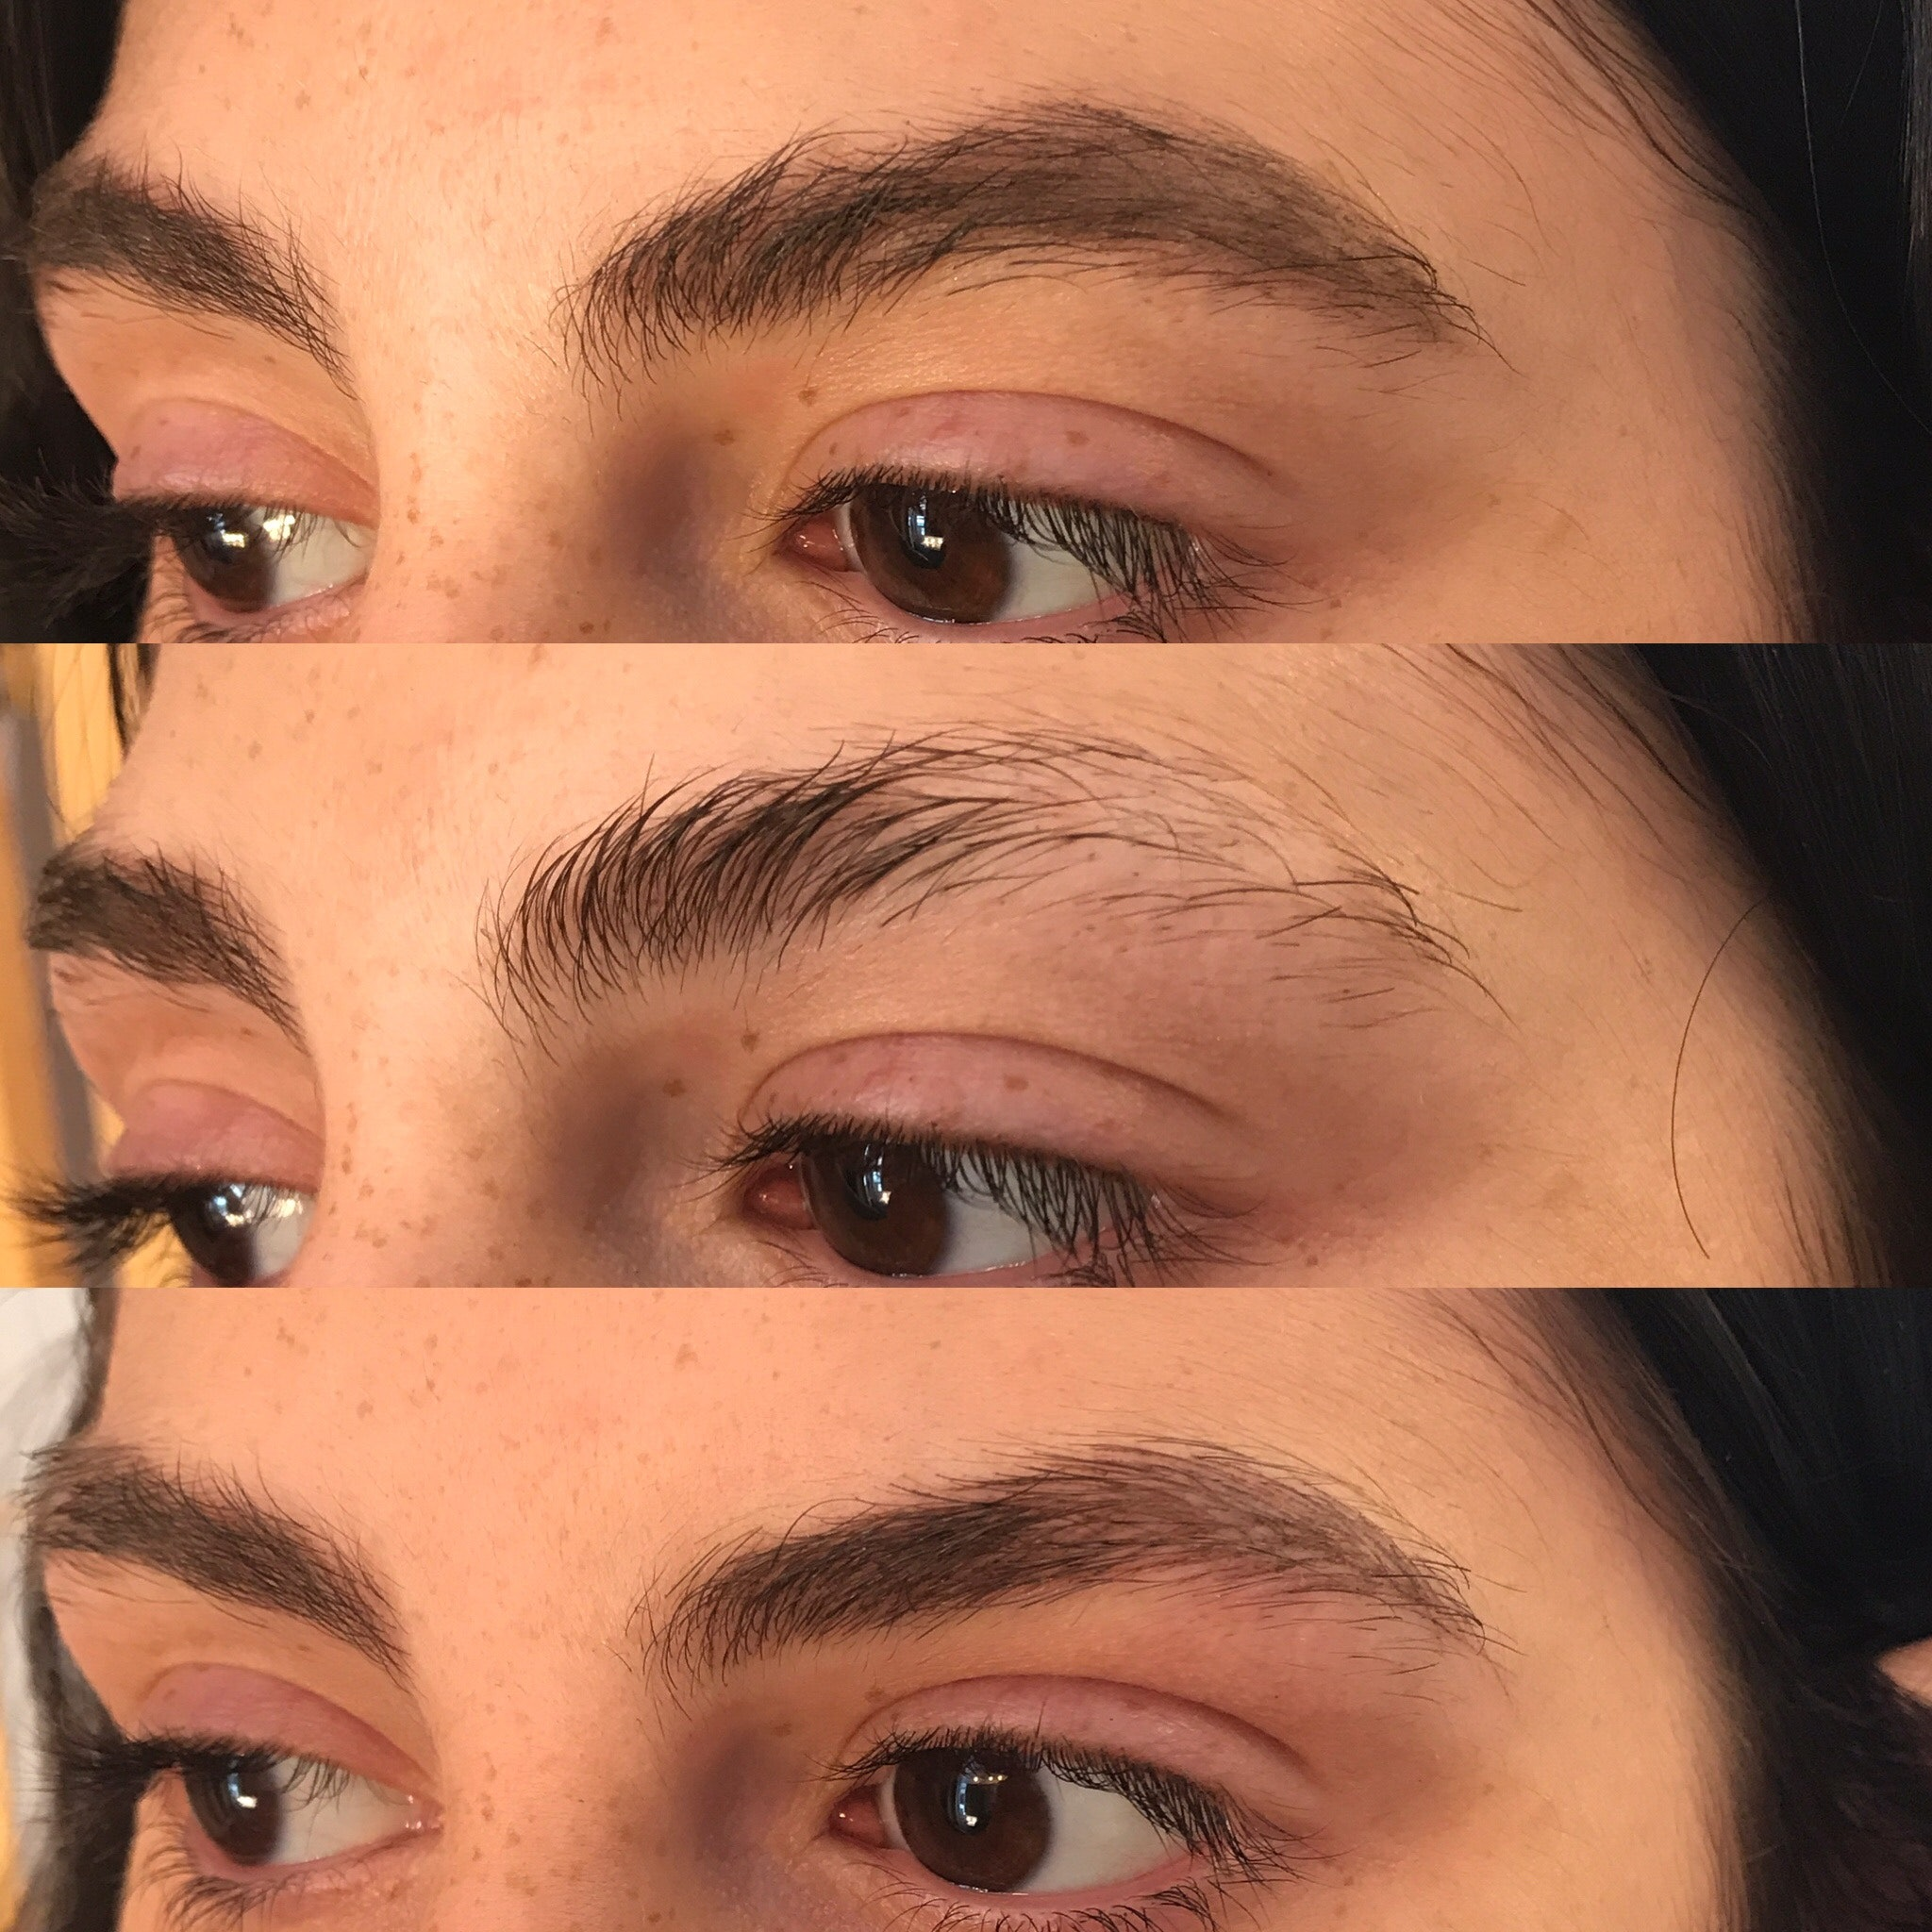 The Benefits Of Microblading Don't Just Help My Brows — It